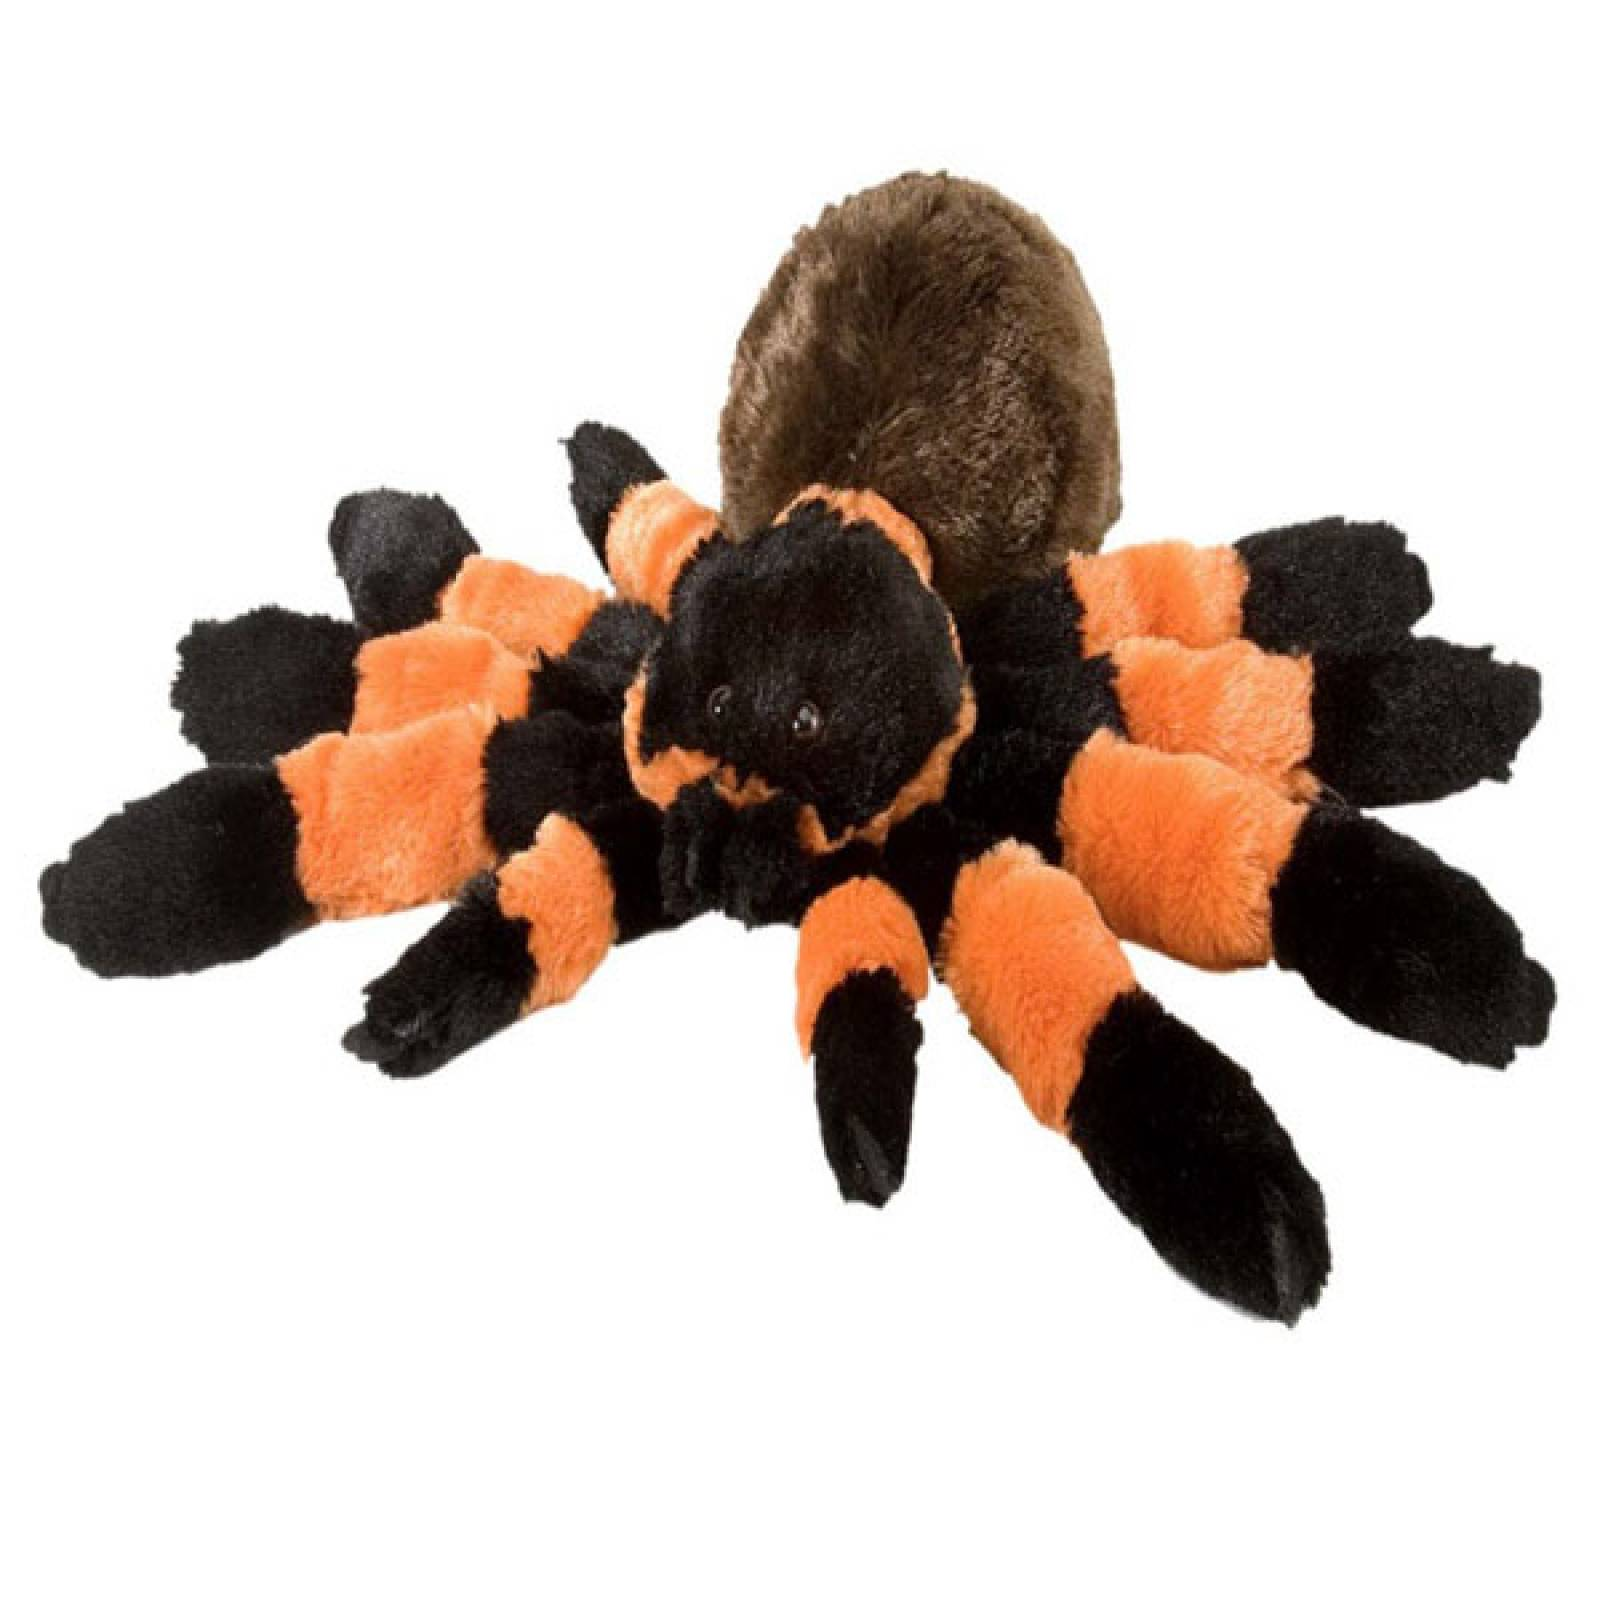 Tarantula Soft Toy Spider 30cm. thumbnails